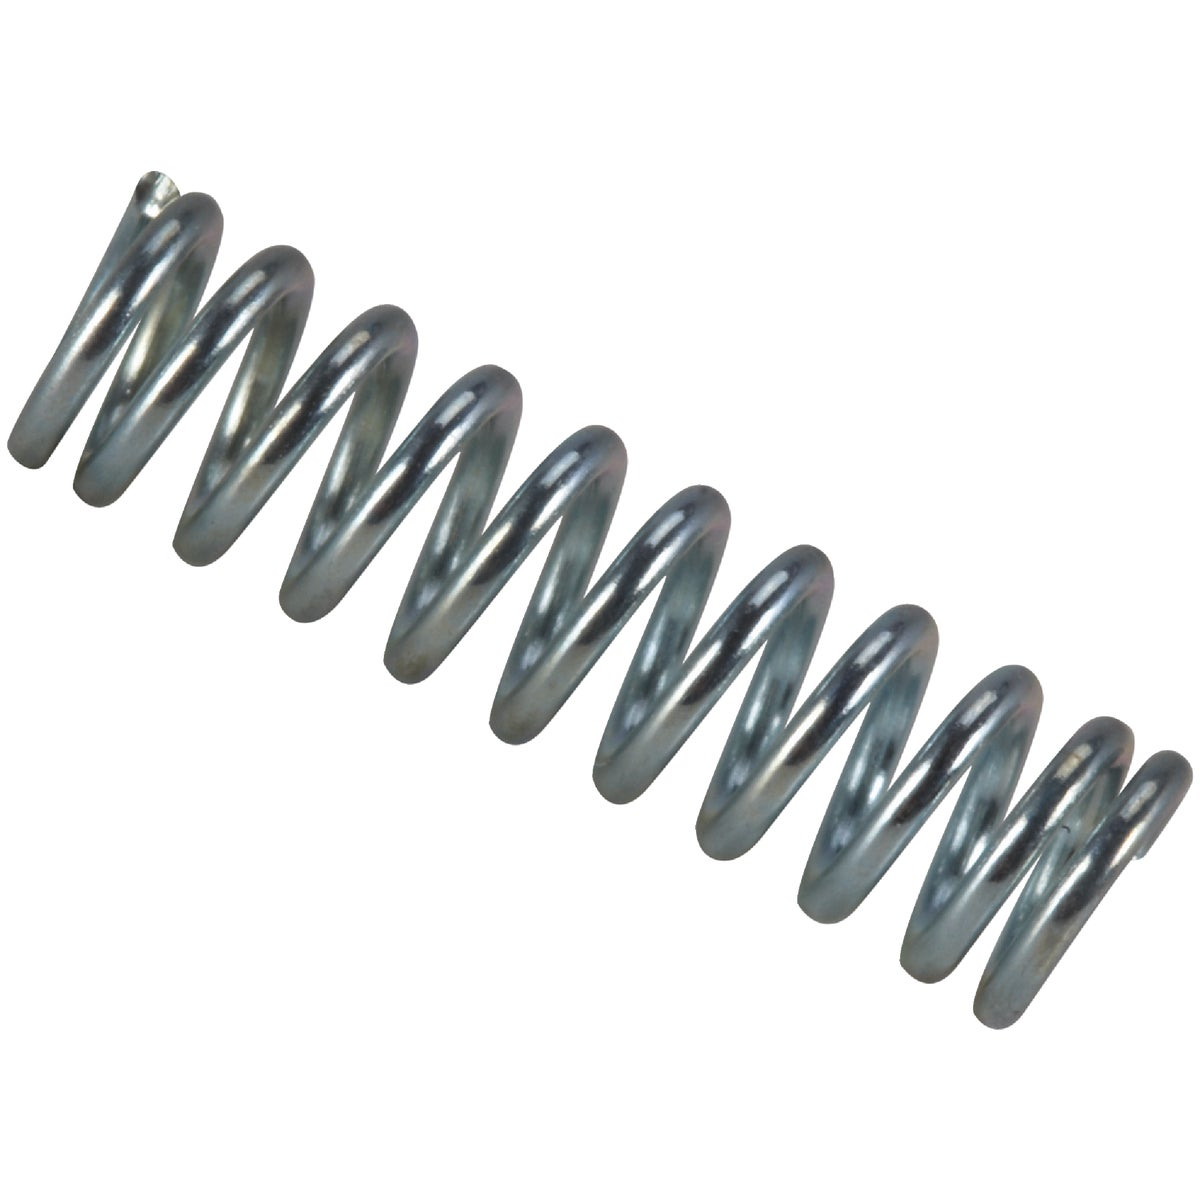 COMPRESSION SPRING - C-836 by Century Spring Corp